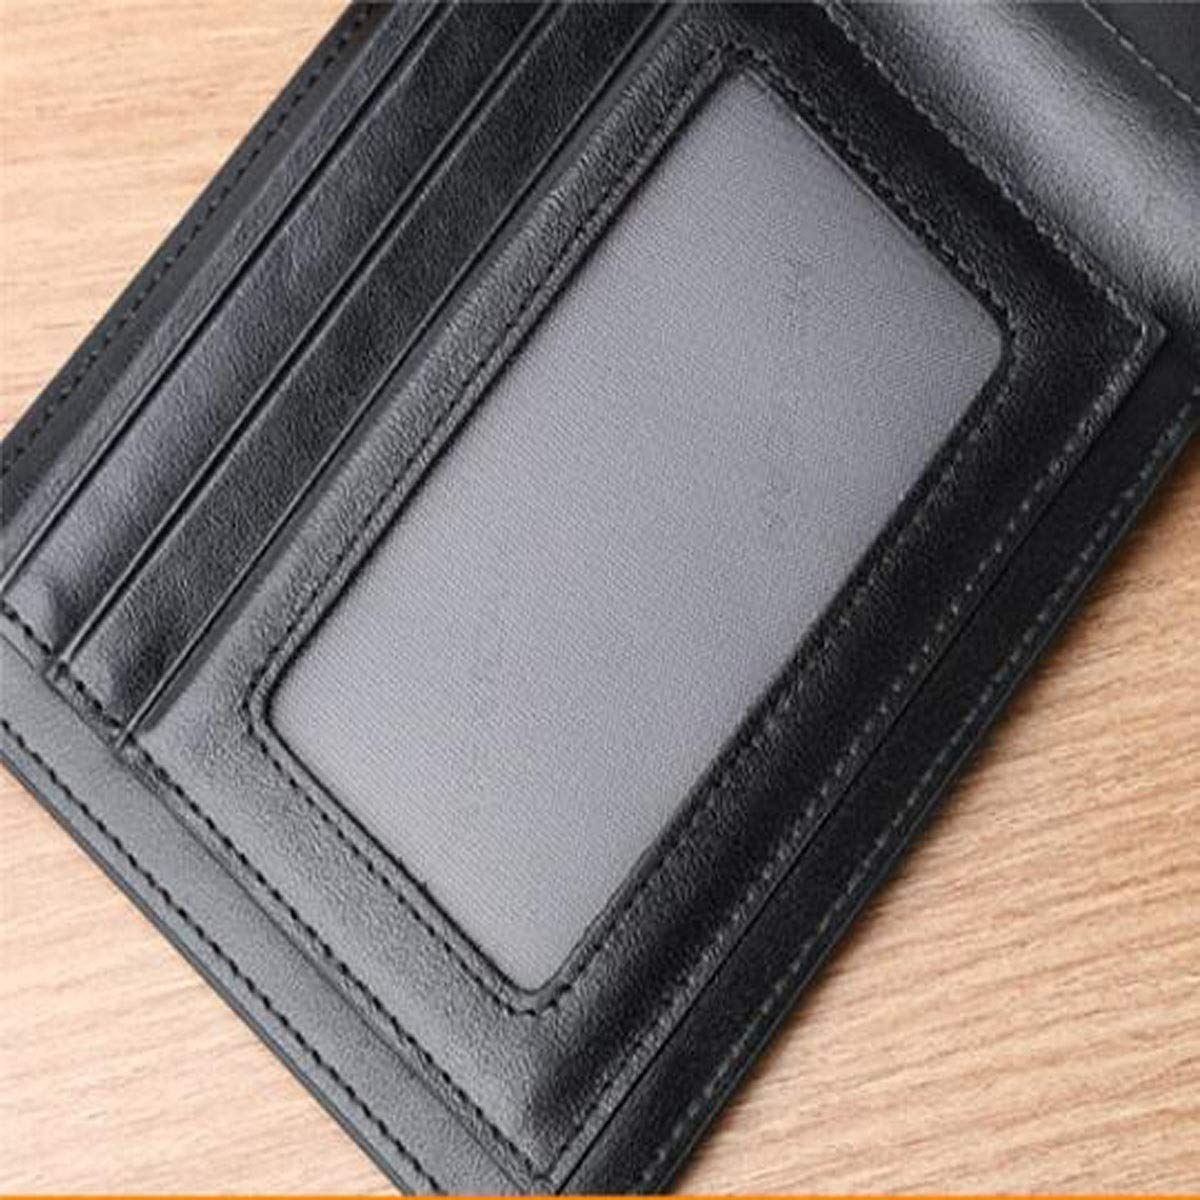 Color : Black, Size : 3.80.64.6 inch 9.5 1.5 11.5 Simple and Stylish Weaving Pattern Youth Carrying Leather Wallet Black Aishanghuayi Wallet cm Suitable for Mens Short Slim Size Color